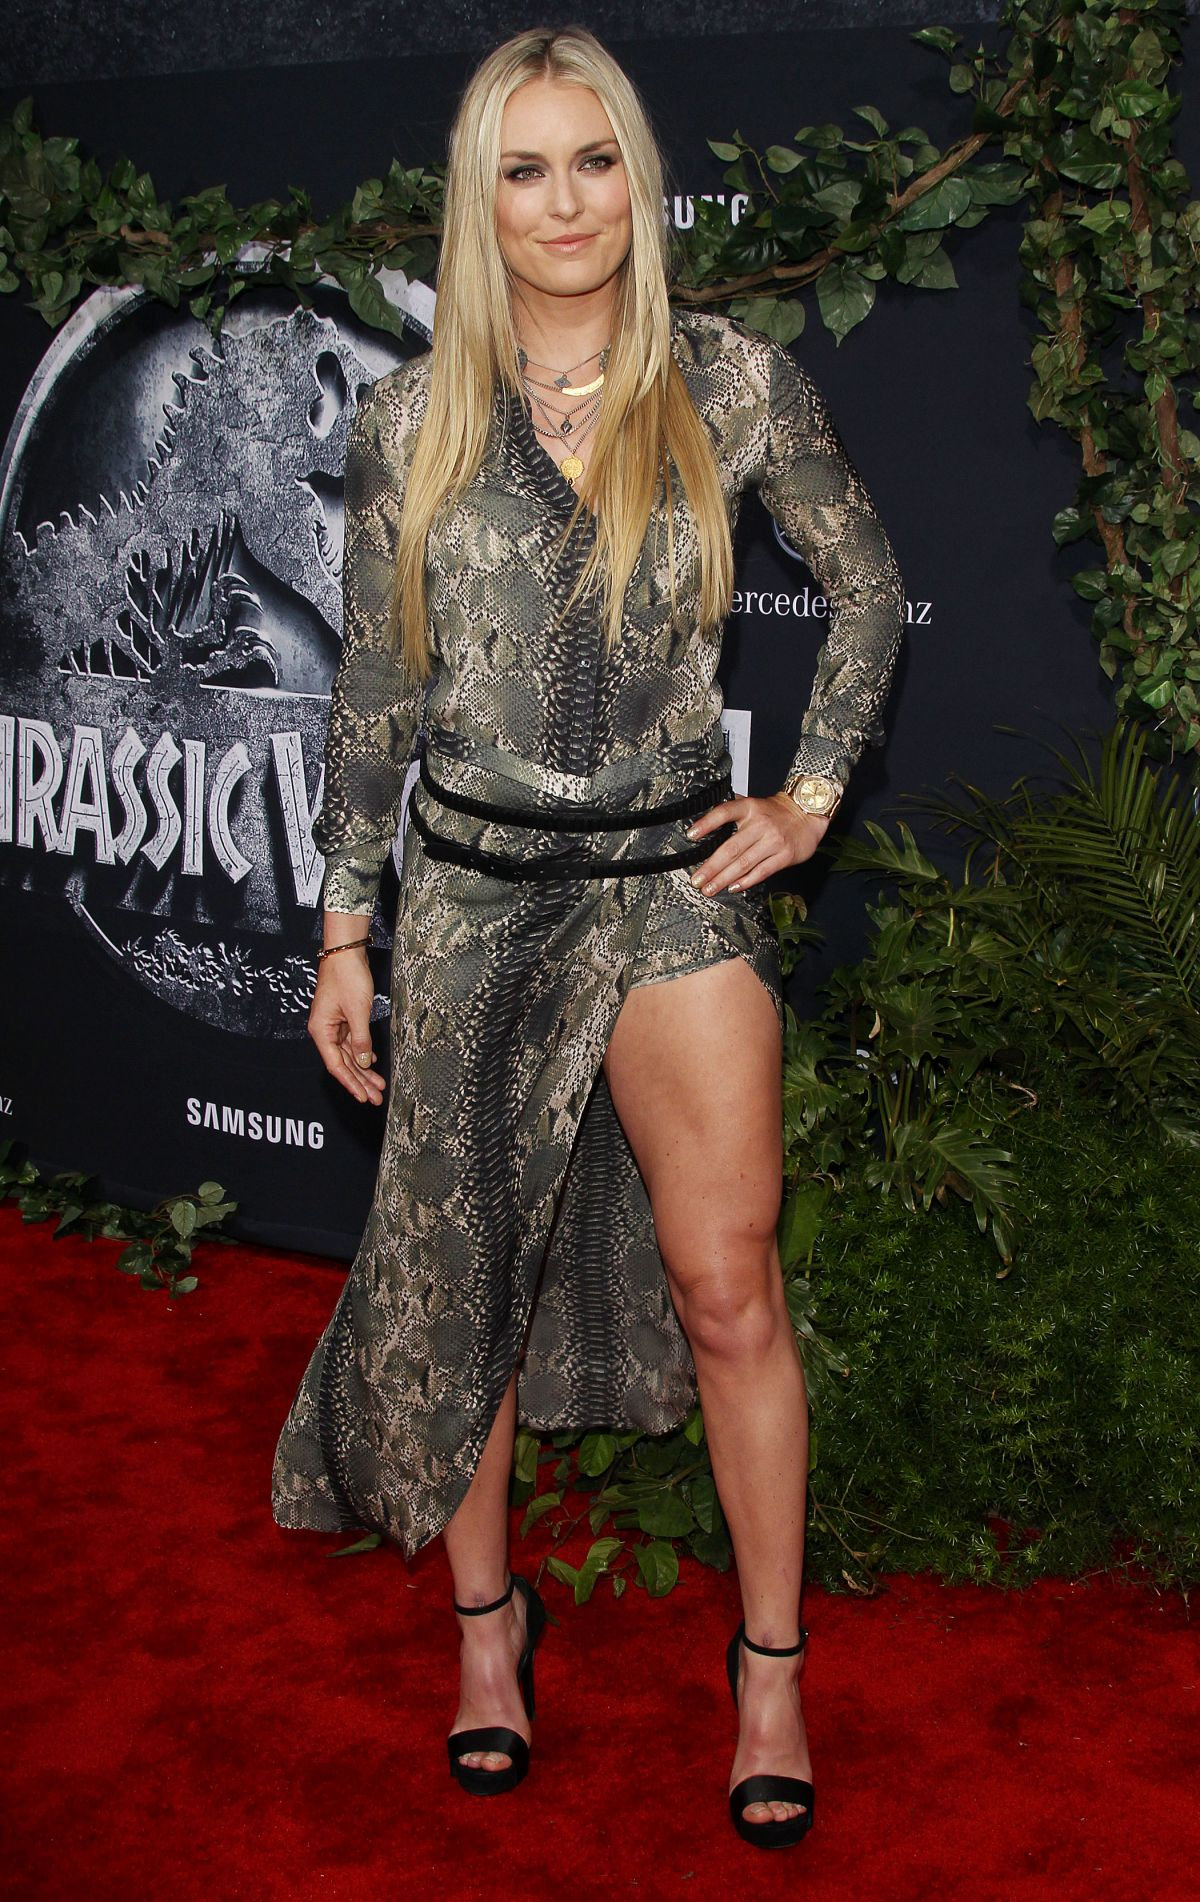 LINDSEY VONN at Jurassic World Premiere in Hollywood - HawtCelebs ...